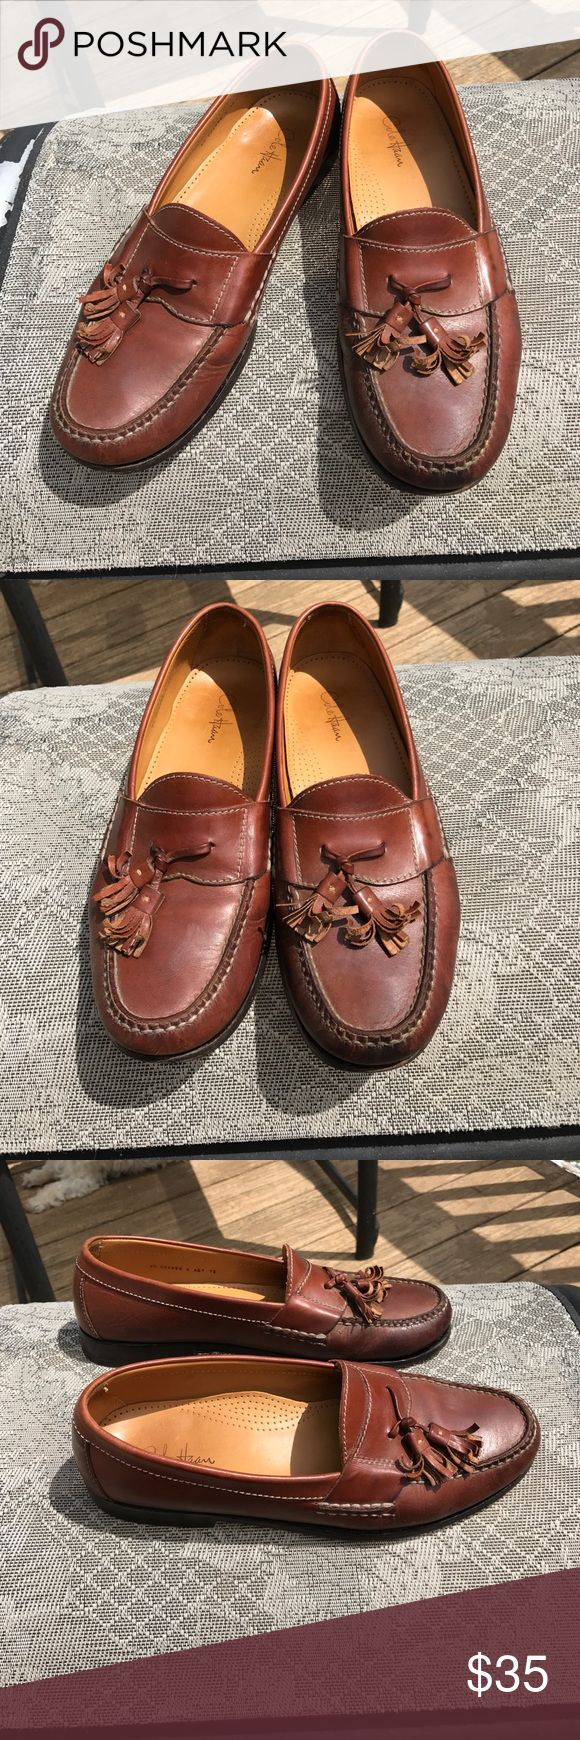 Cole Haan Brown Pinch Tassel 9D Mens SALE Cole Haan Brown Pinch Tassel 9D Mens . These are worn. These have been worn & Loved. Still have life in them. Priced accordingly. See photos. 🚫trades. Please ask all questions prior to buying Cole Haan Shoes Loafers & Slip-Ons